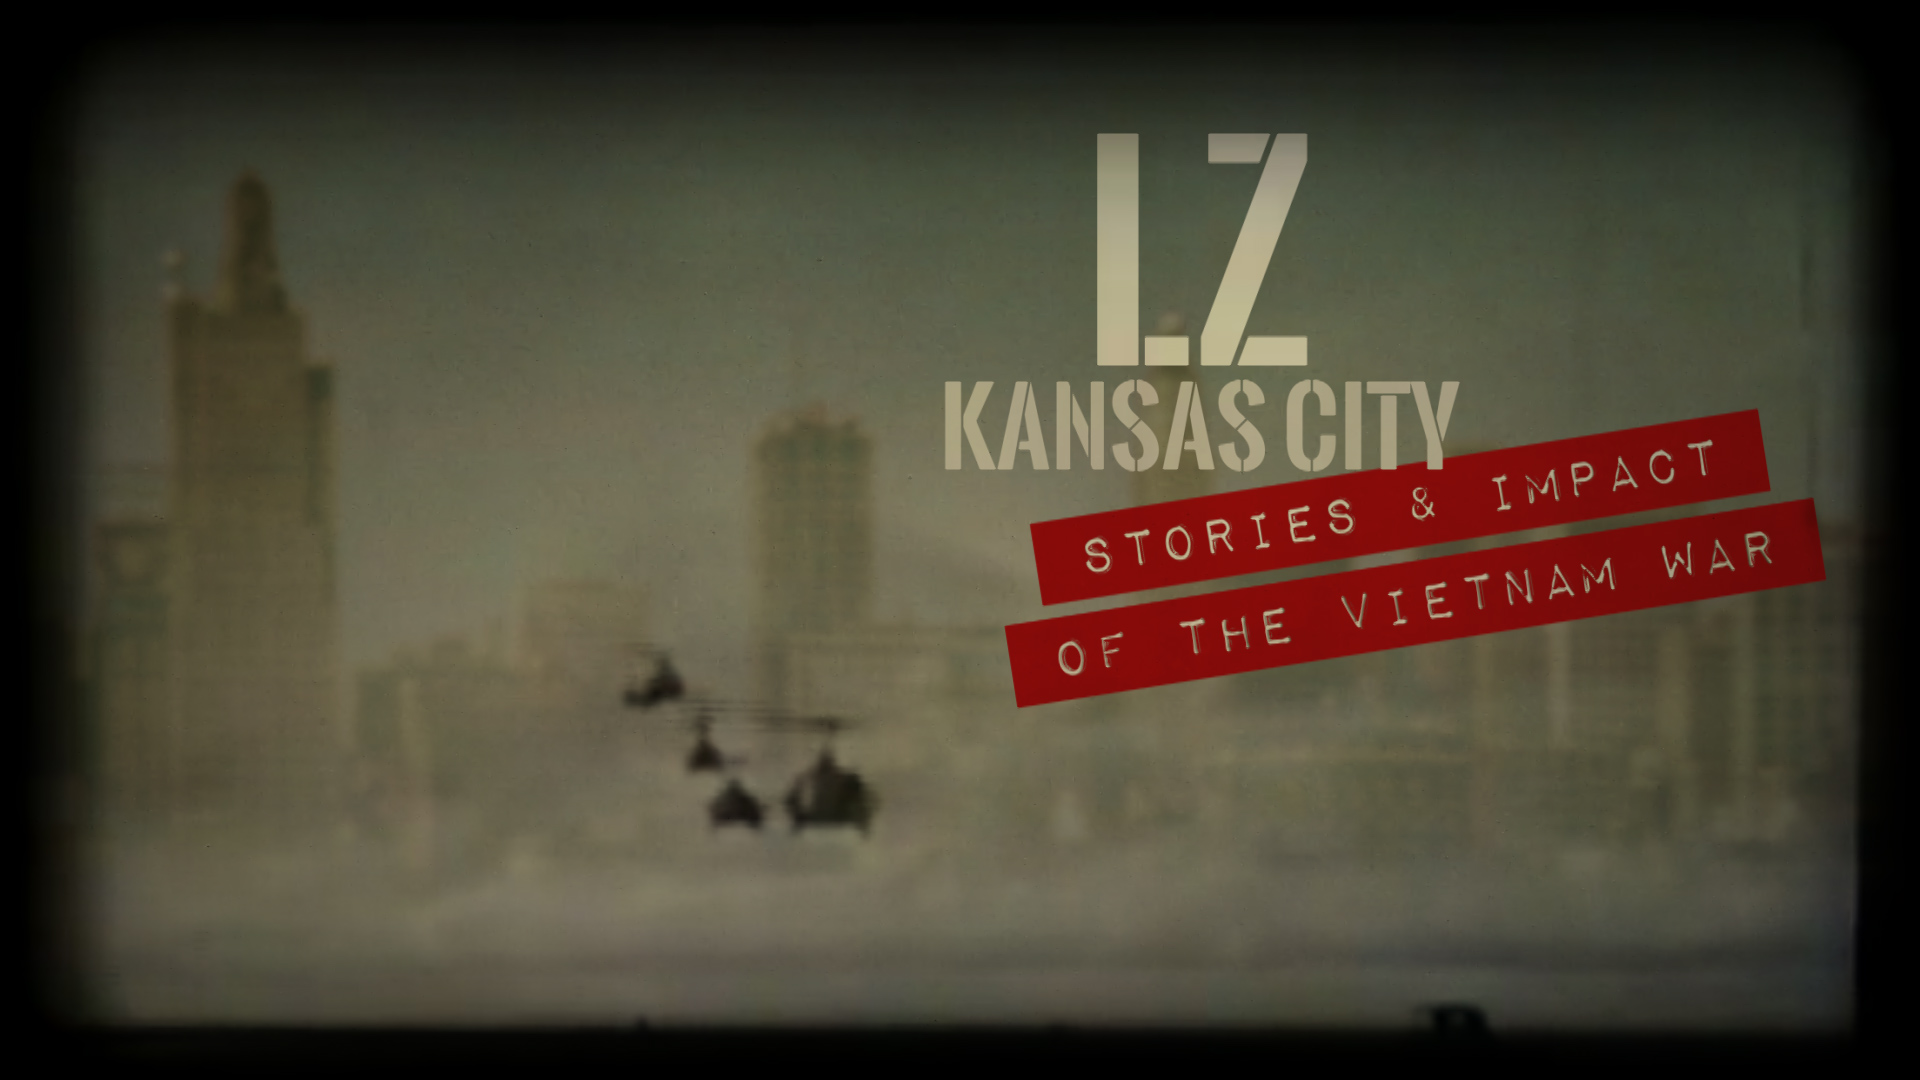 LZ Kansas City